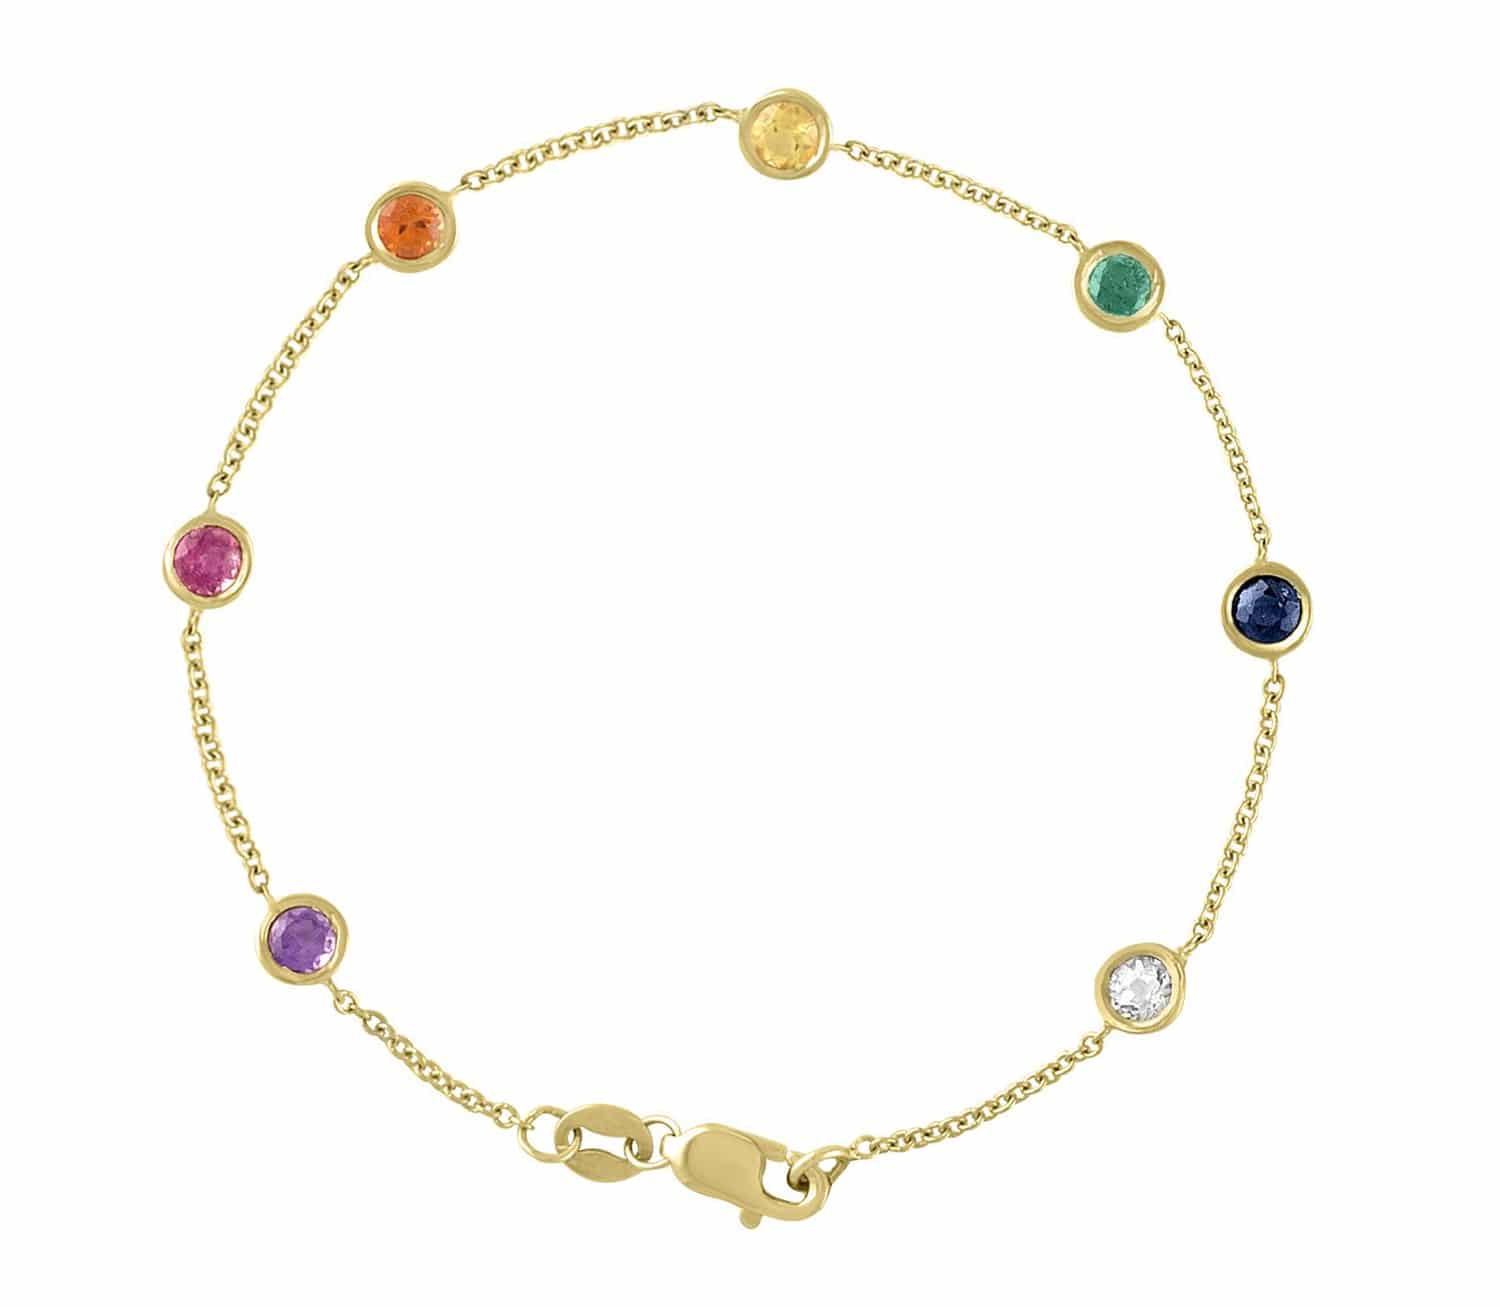 14 Karat Gold Rainbow By The Yard Bracelet